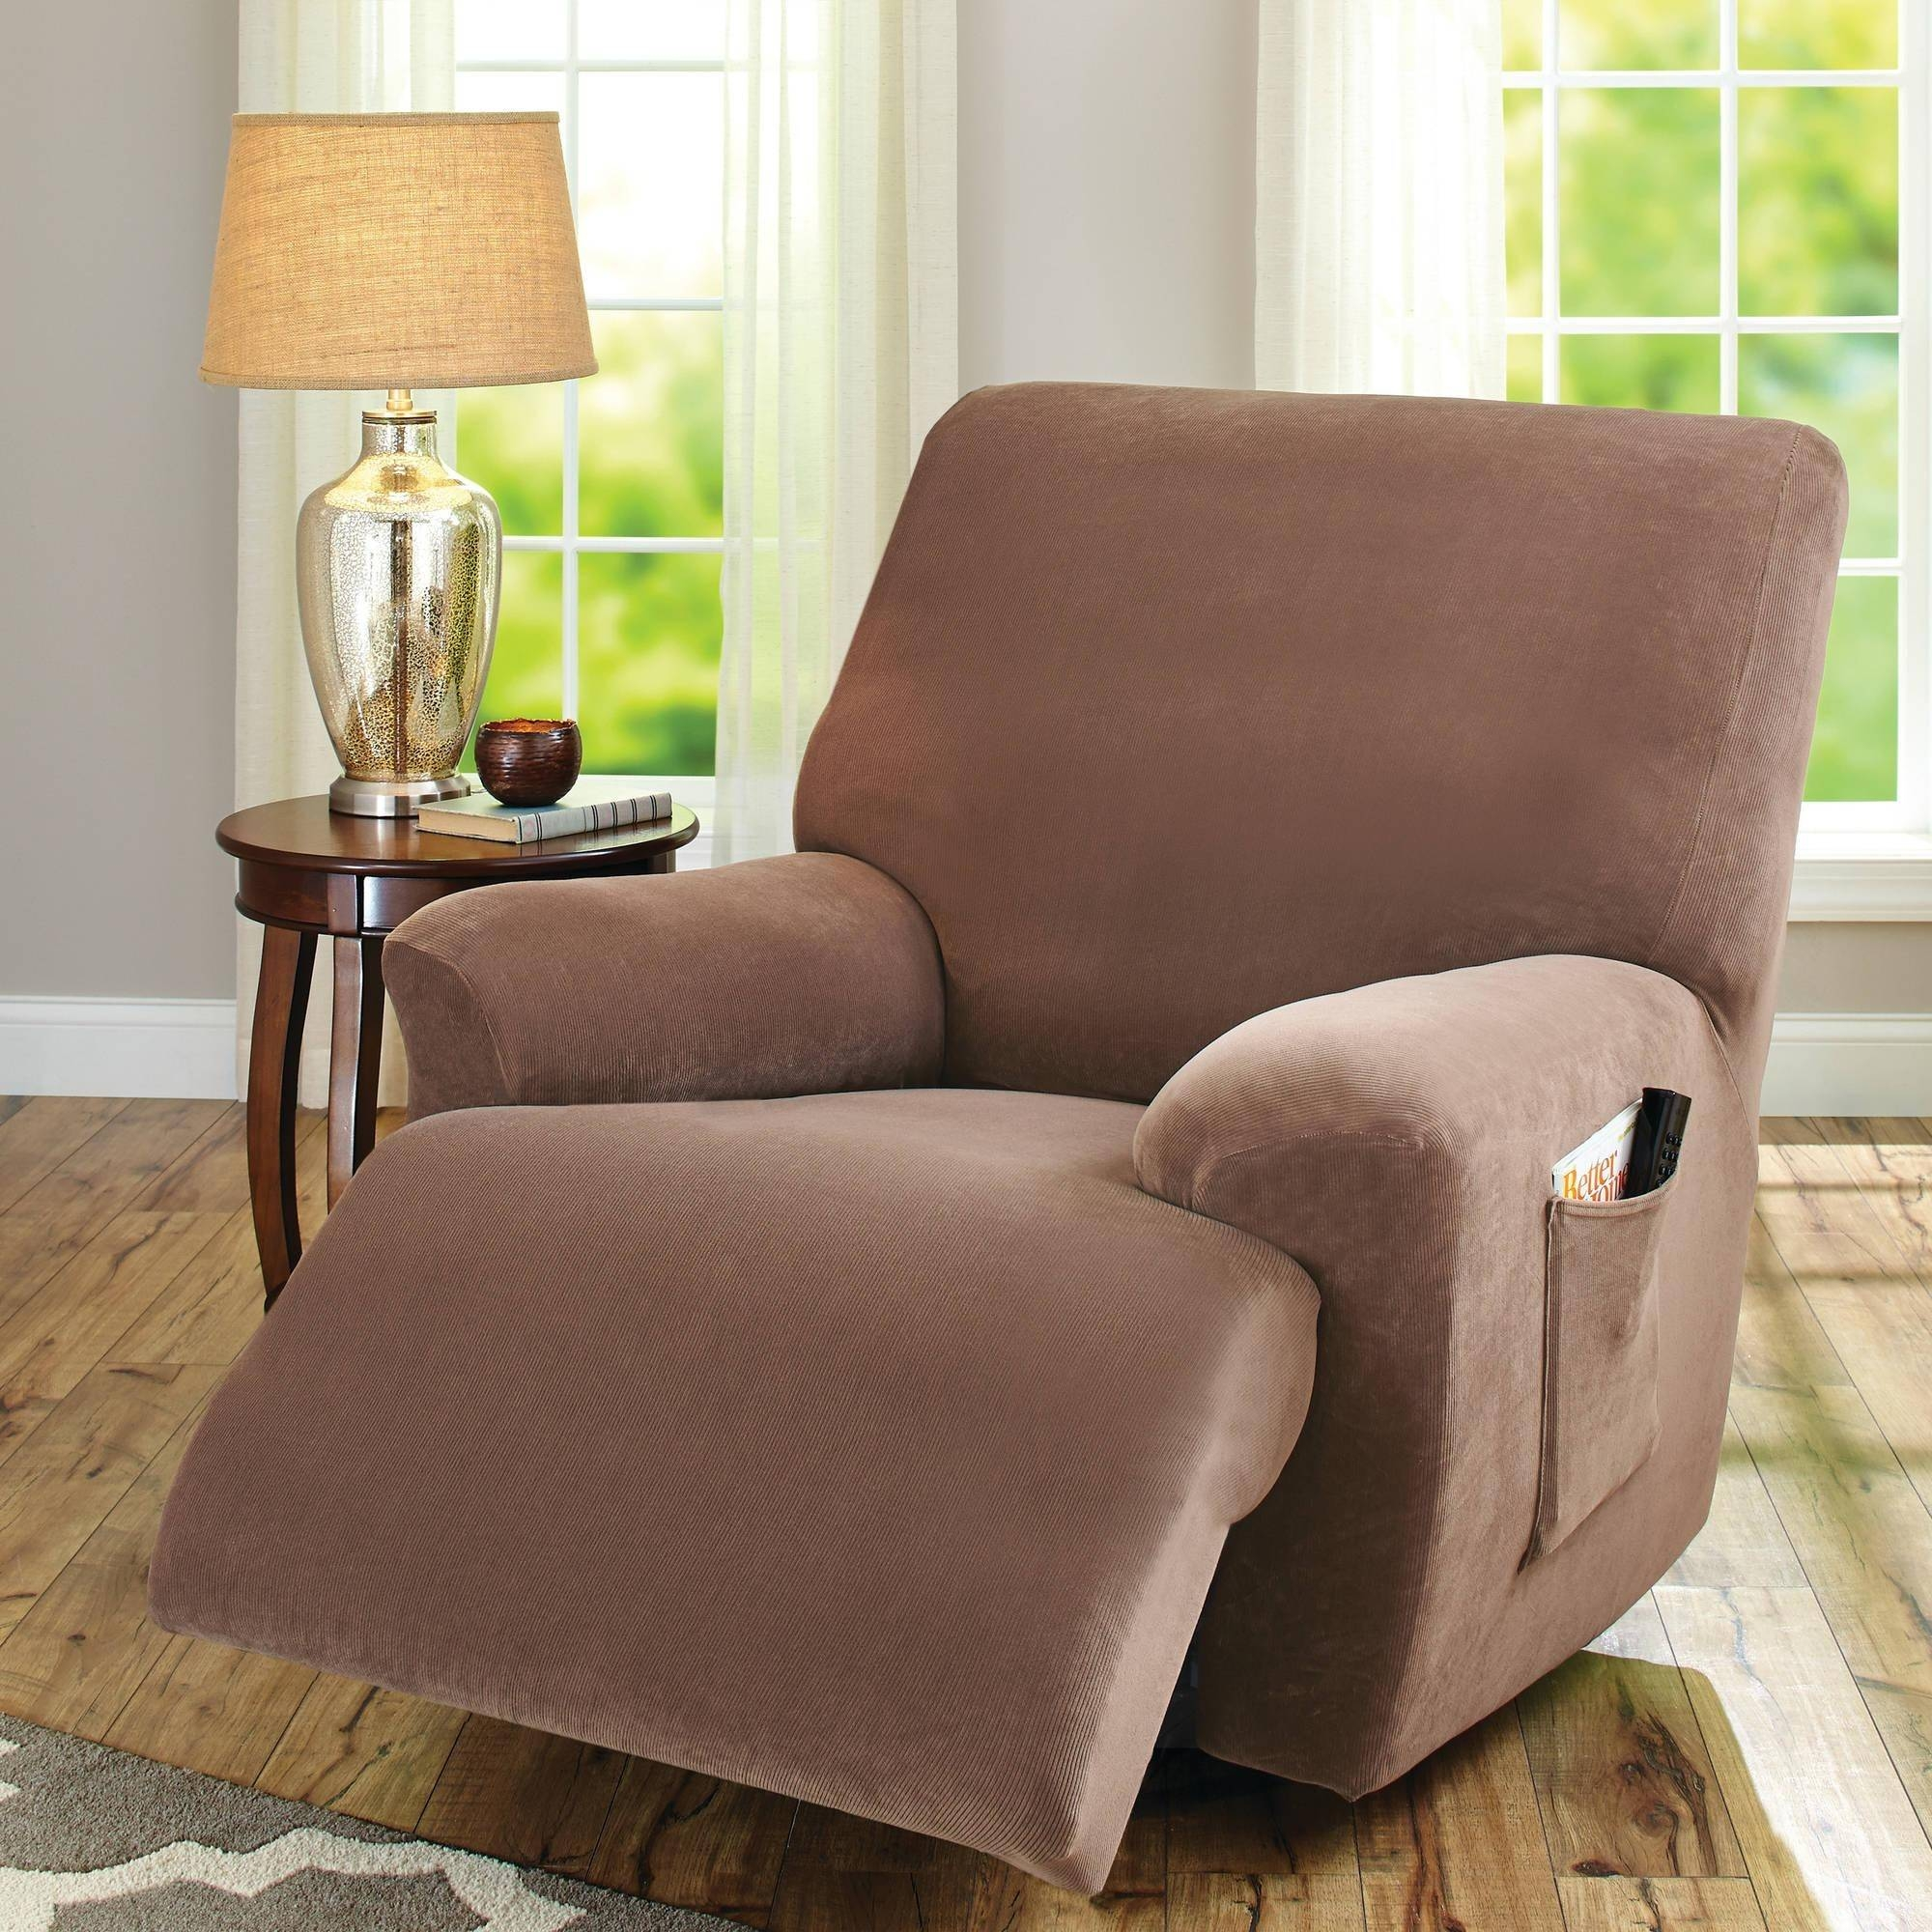 20 Ideas Of Stretch Covers For Recliners | Sofa Ideas In Stretch Covers For Recliners (View 1 of 15)